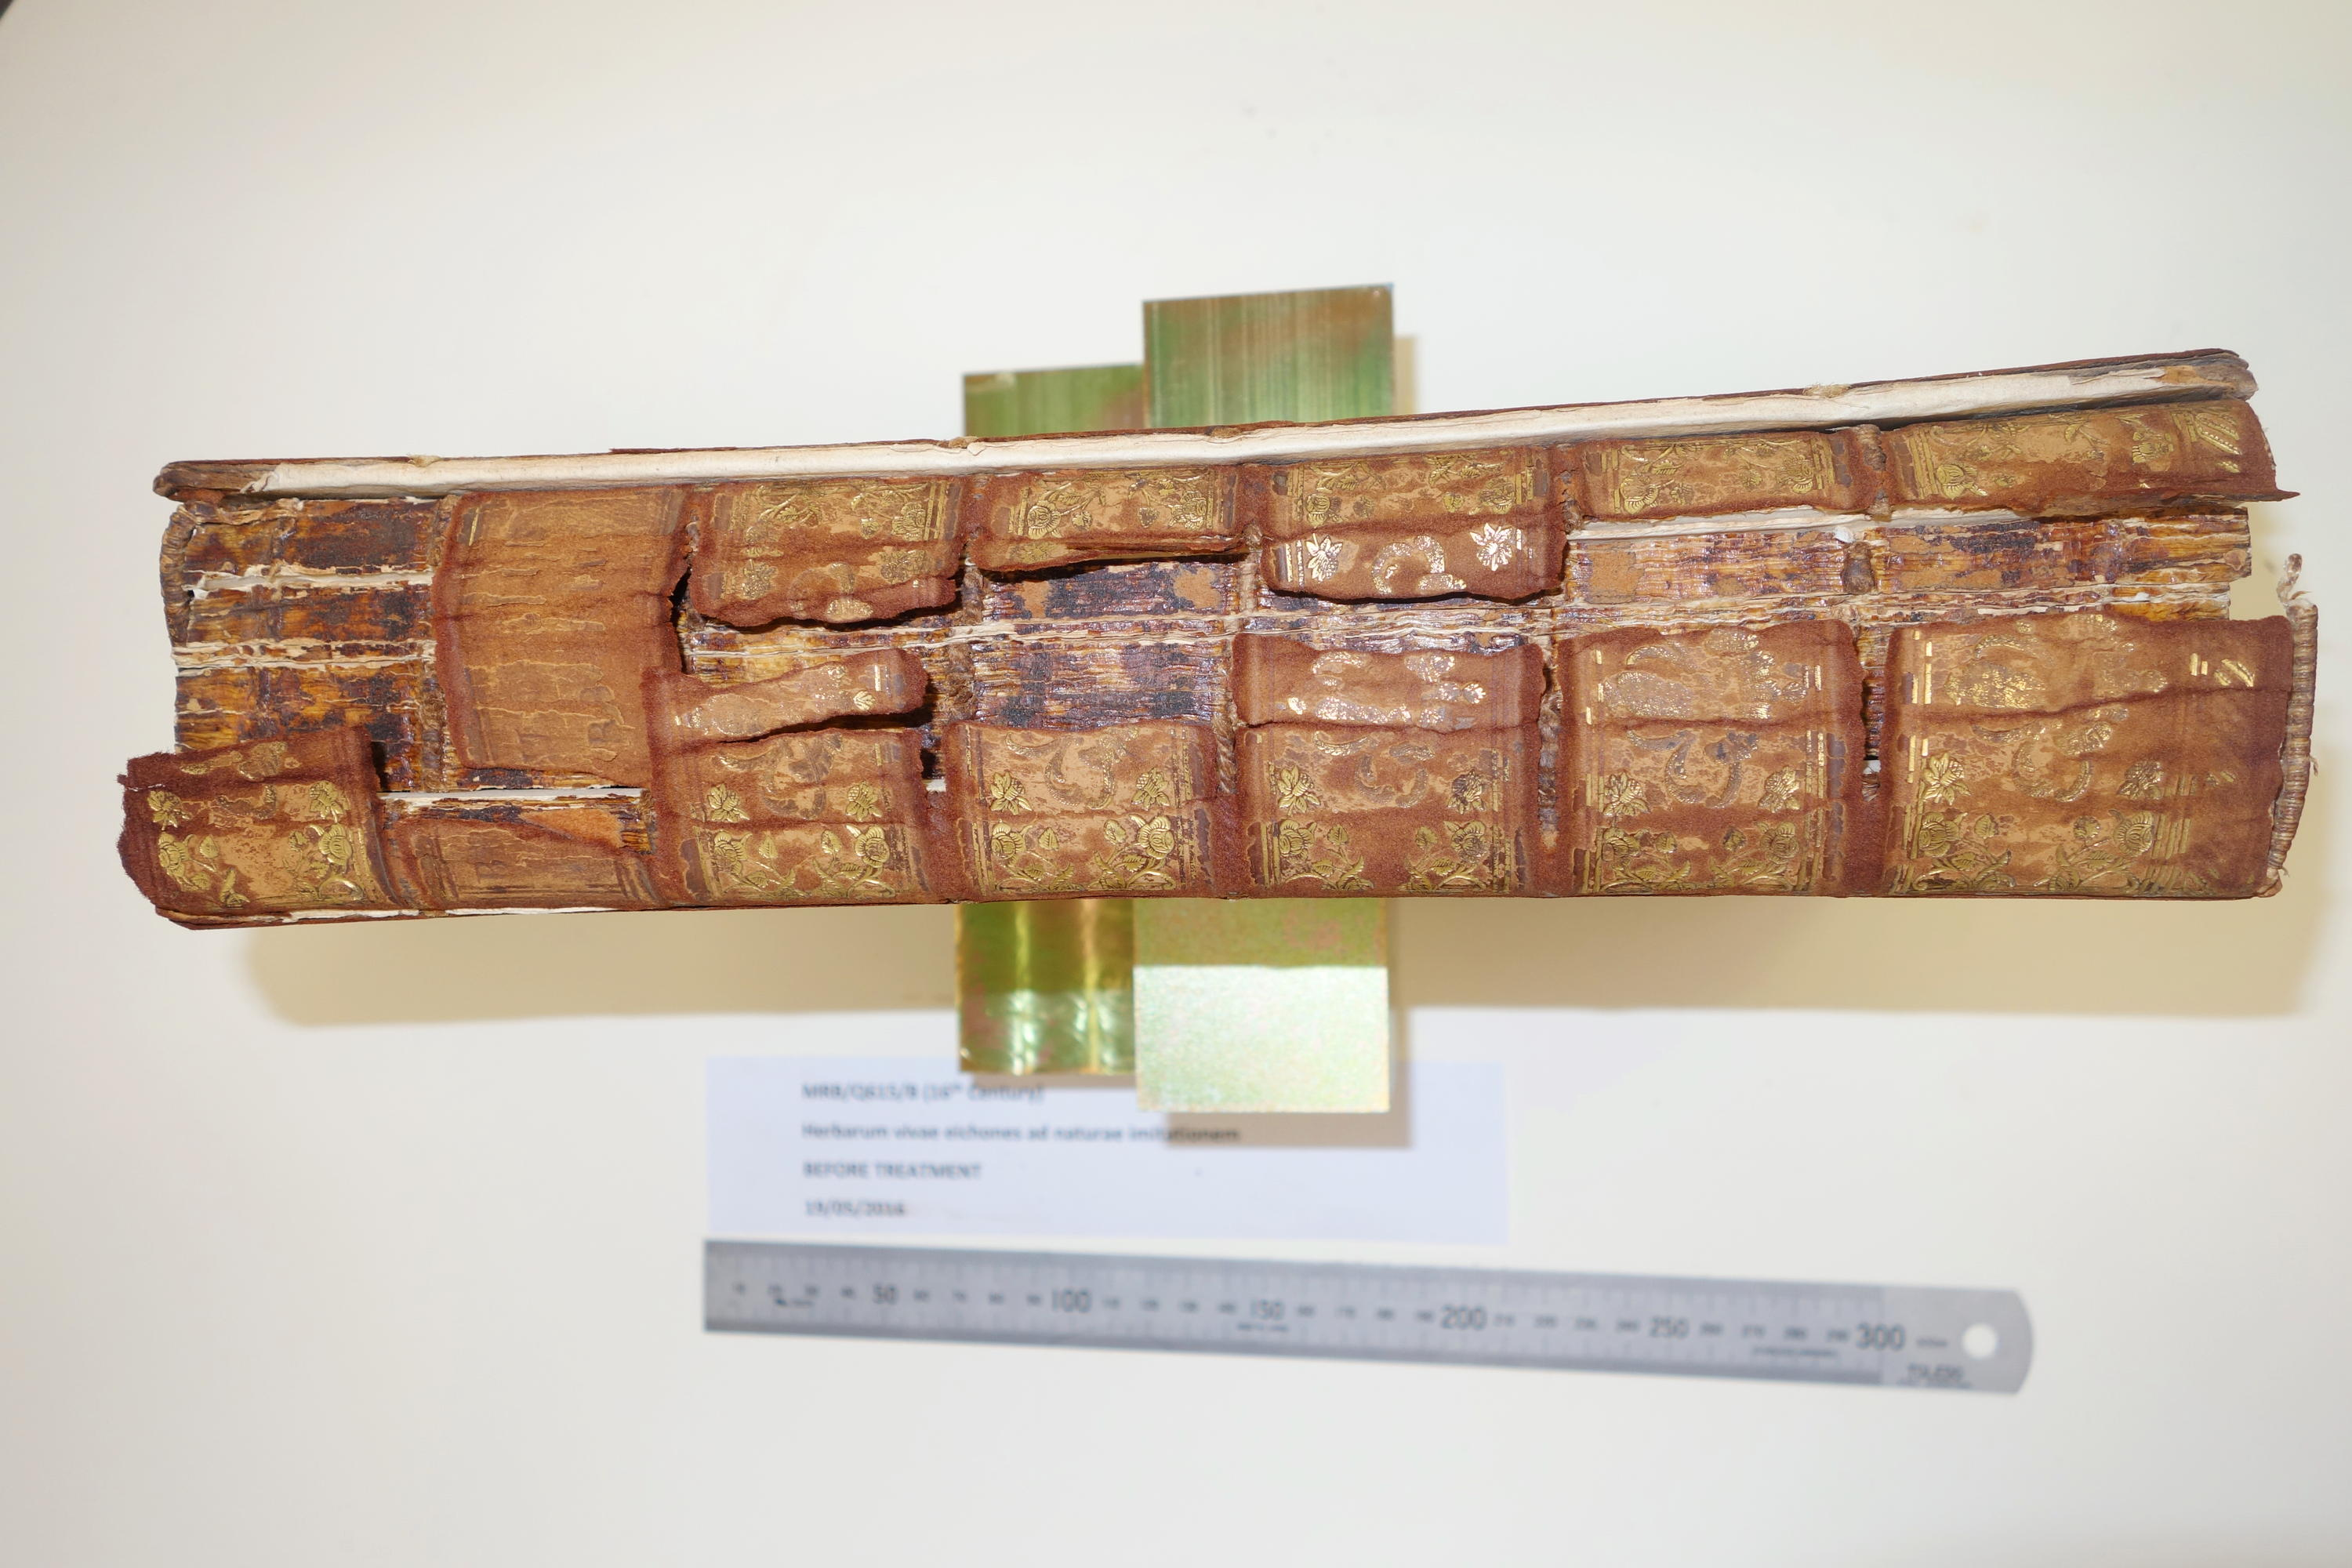 Rare book spine in damaged condition